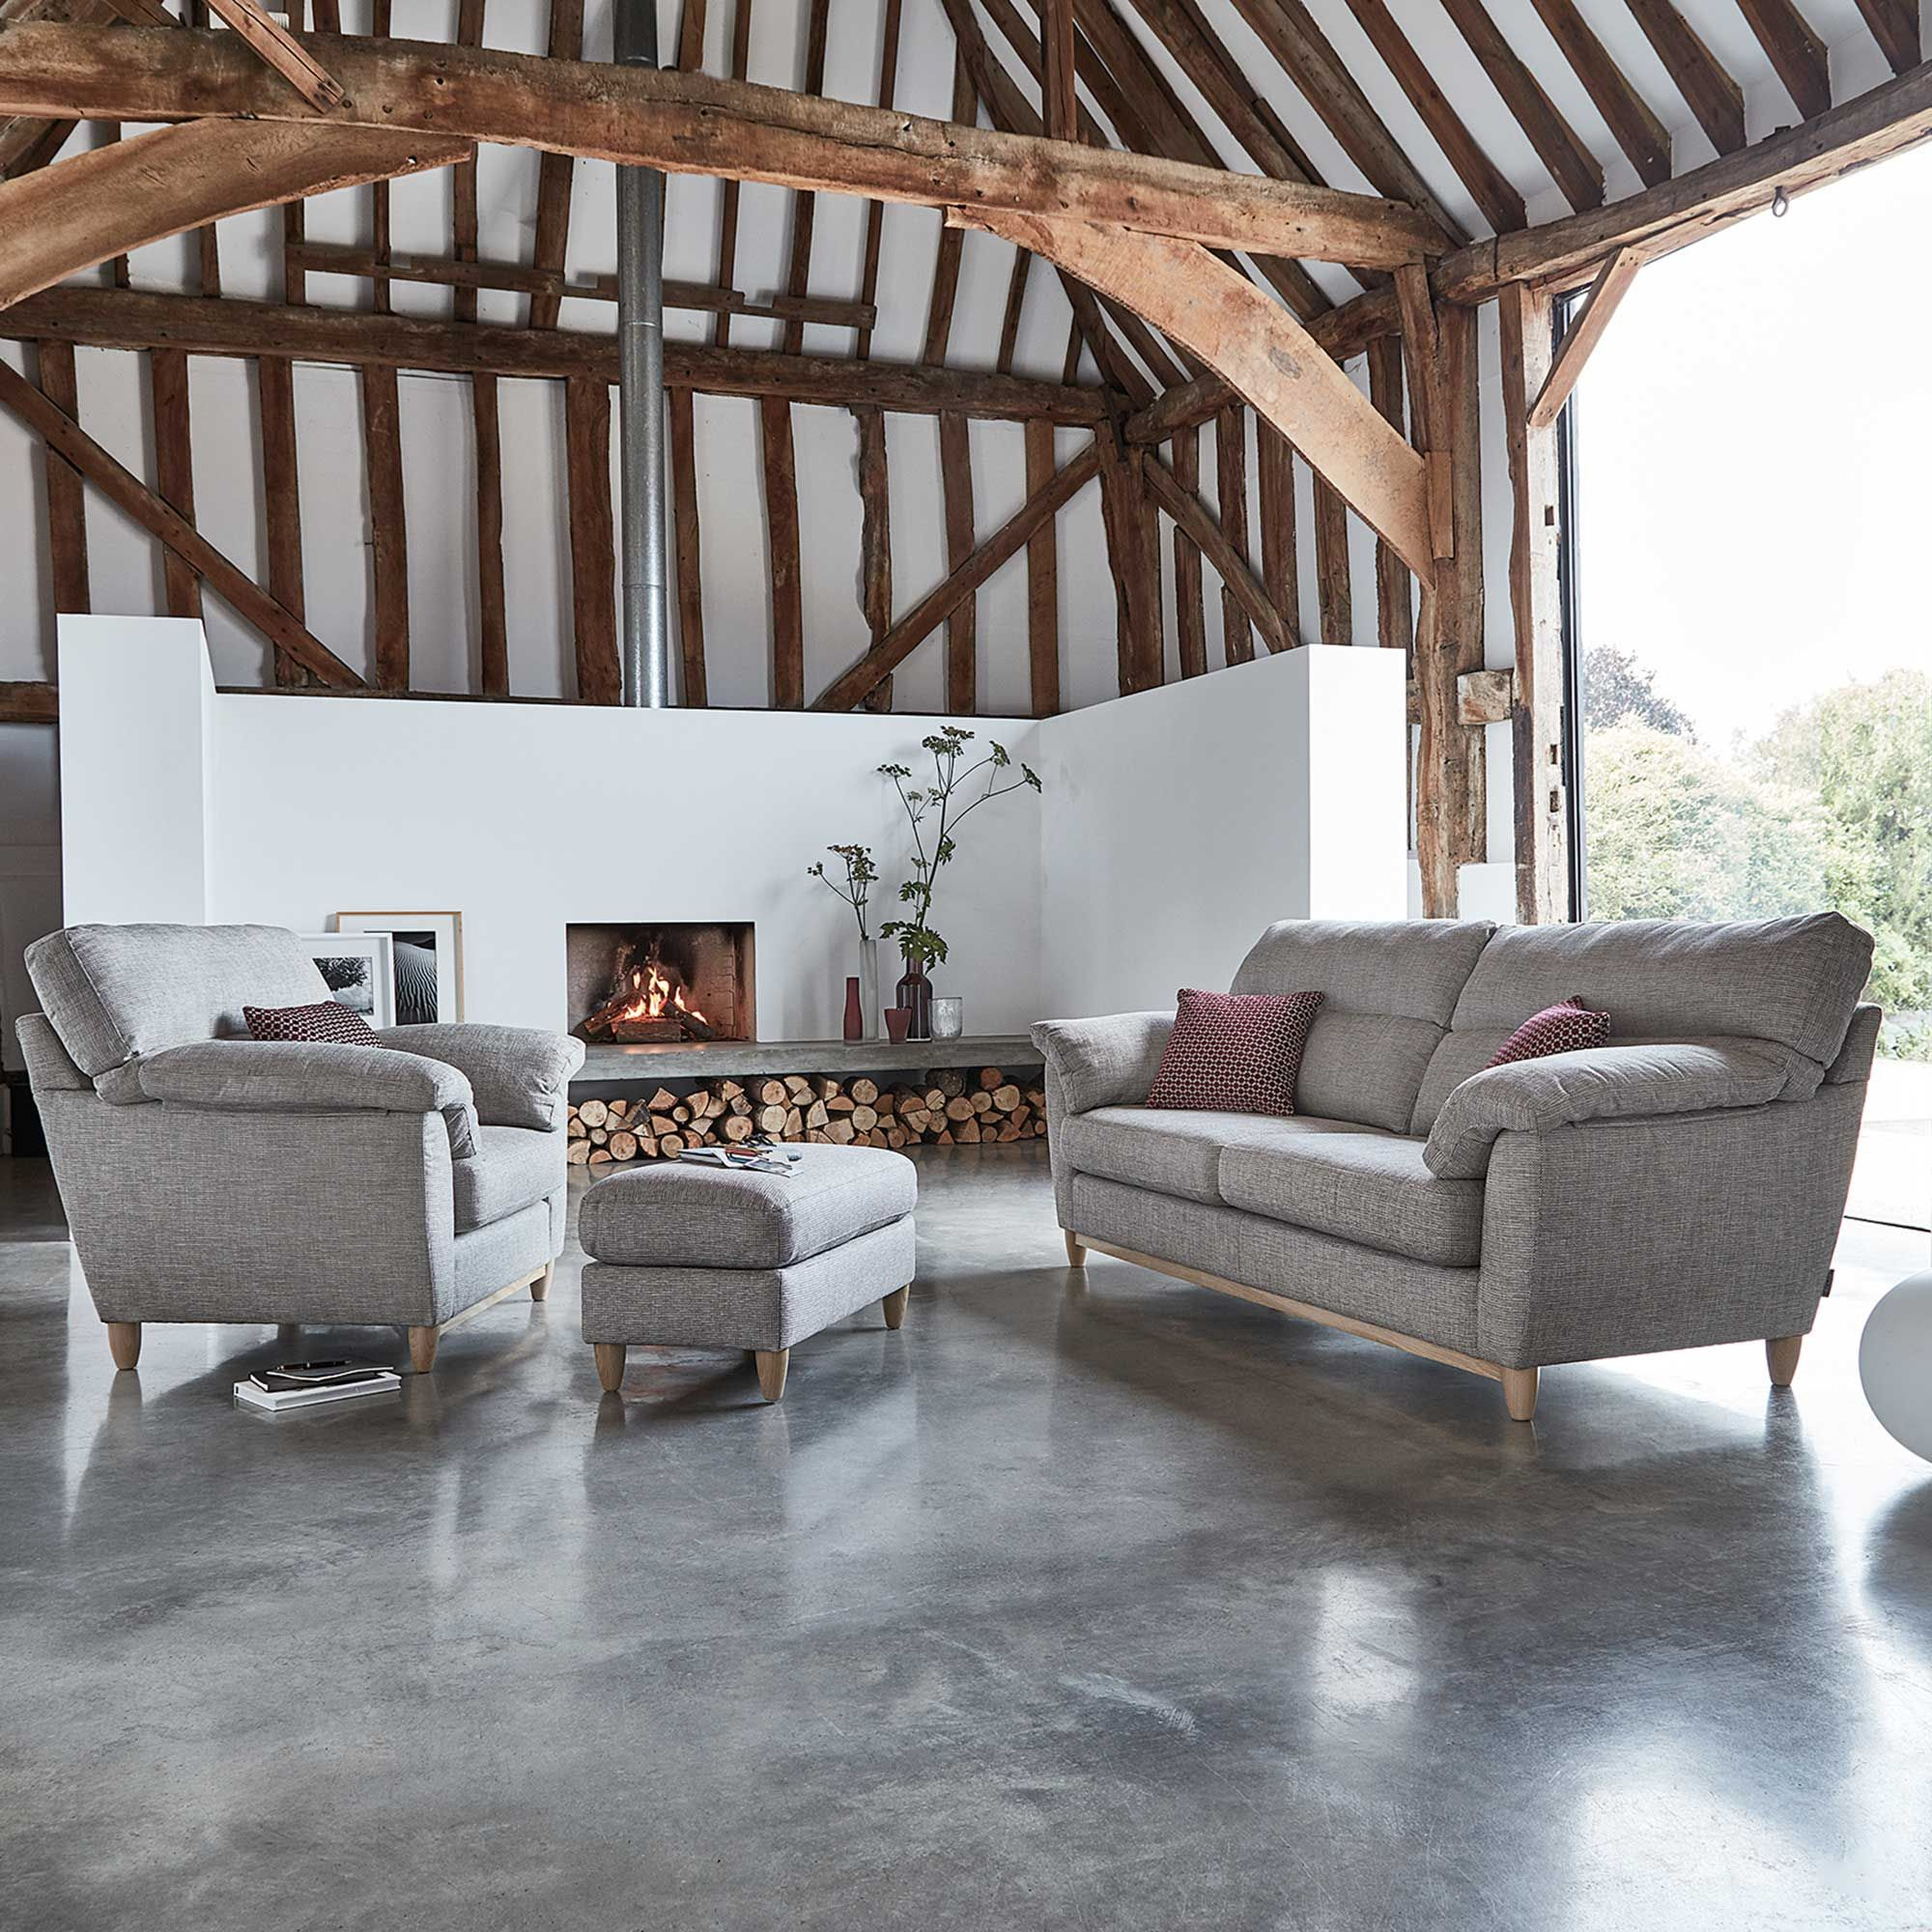 stonehouse furniture. Ercol Adrano Large Fabric Sofa Available Online At Barker \u0026 Stonehouse. Browse Our Fabulous Range Stonehouse Furniture D